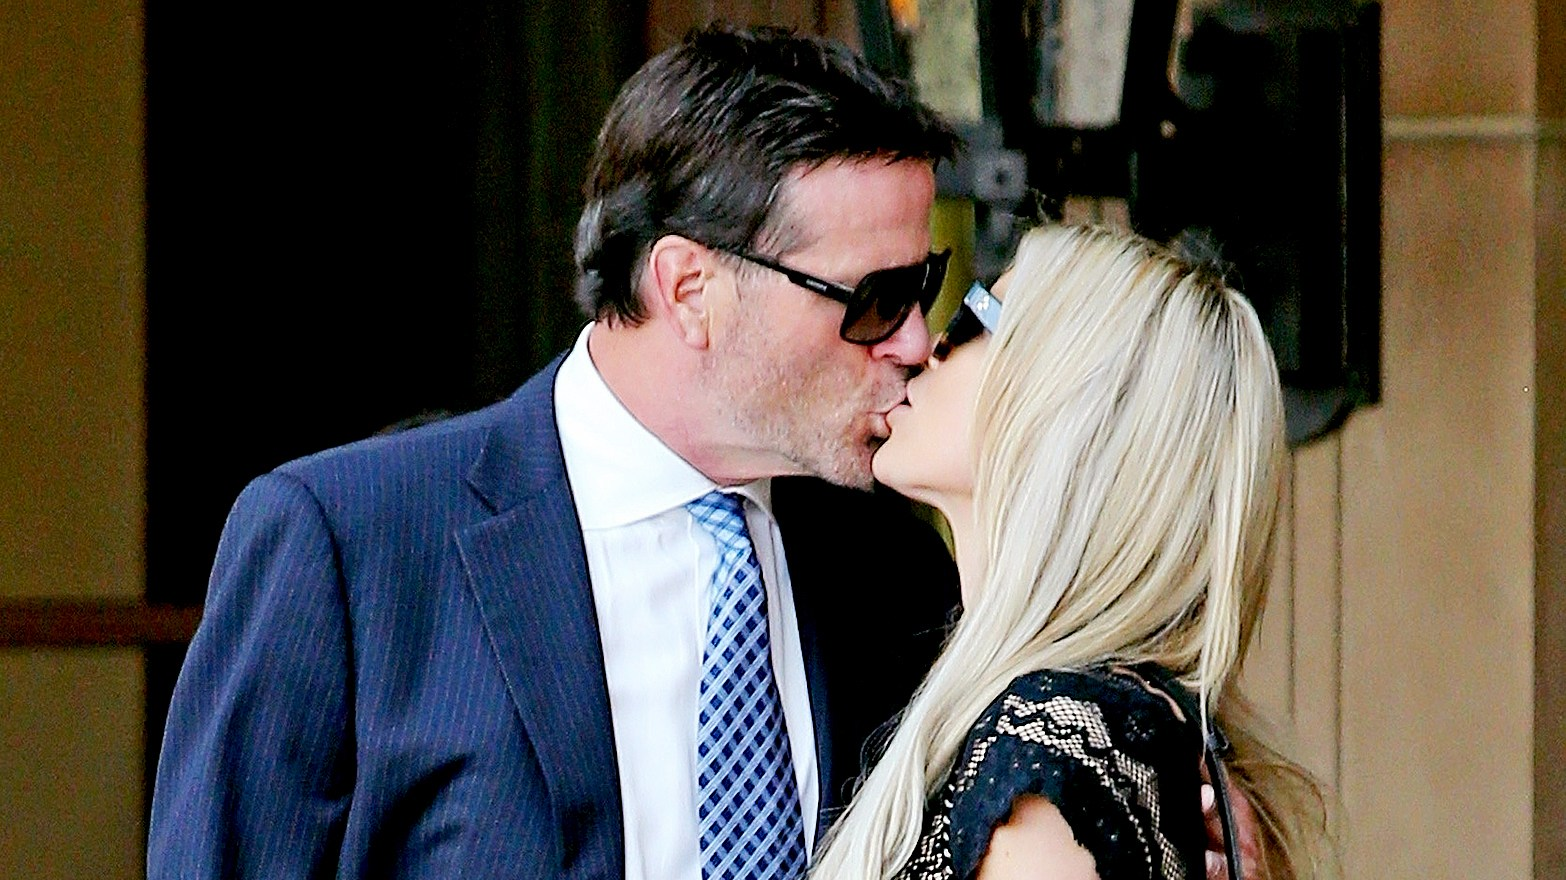 Christina El Moussa celebrates her birthday with a kiss from boyfriend Doug Spedding at the Montage hotel in the 90210.